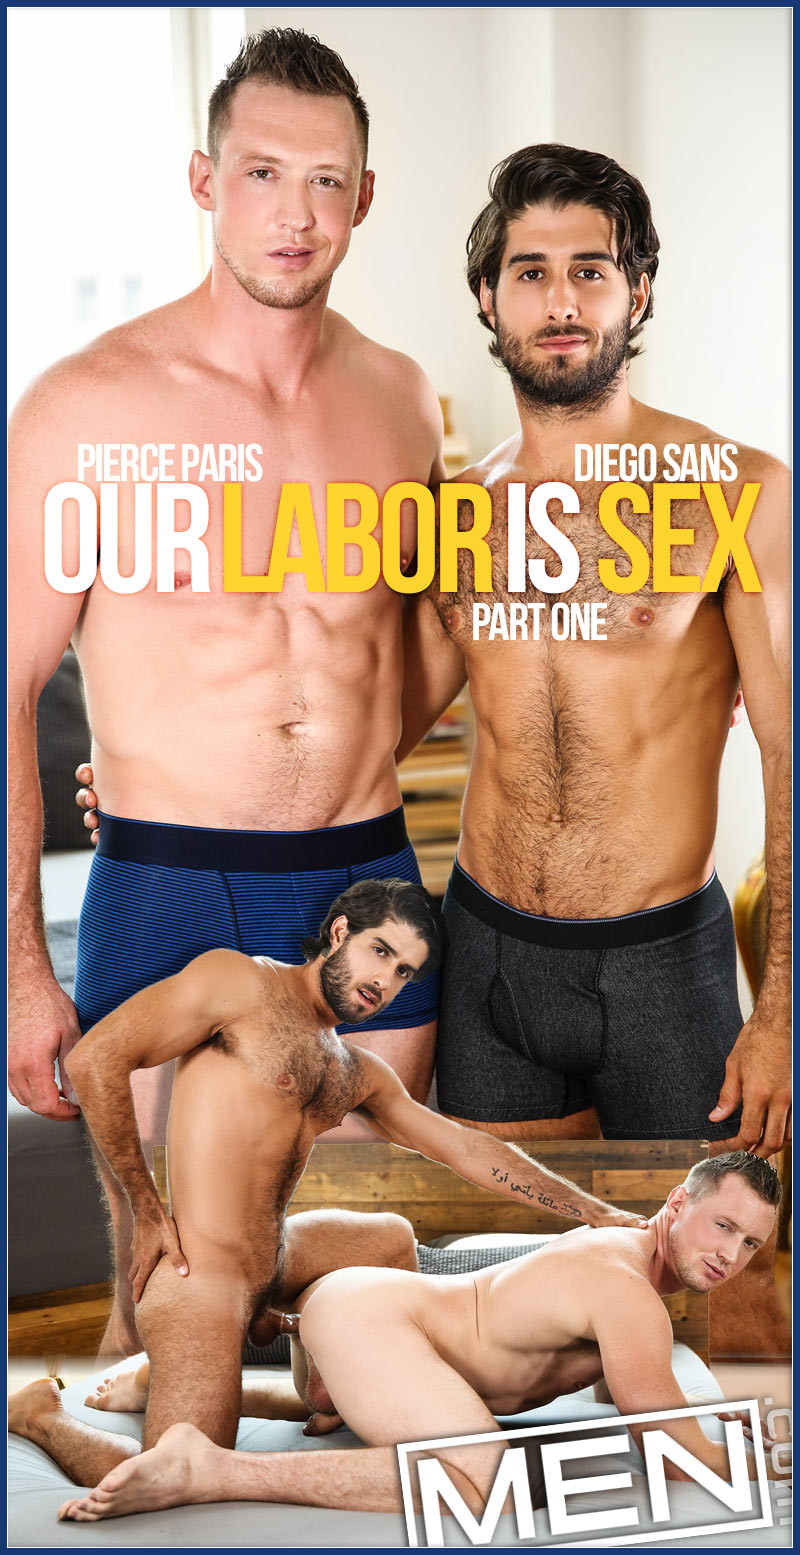 Our Labor Is Sex, Part One (Diego Sans Fucks Pierce Paris) at Drill My Hole